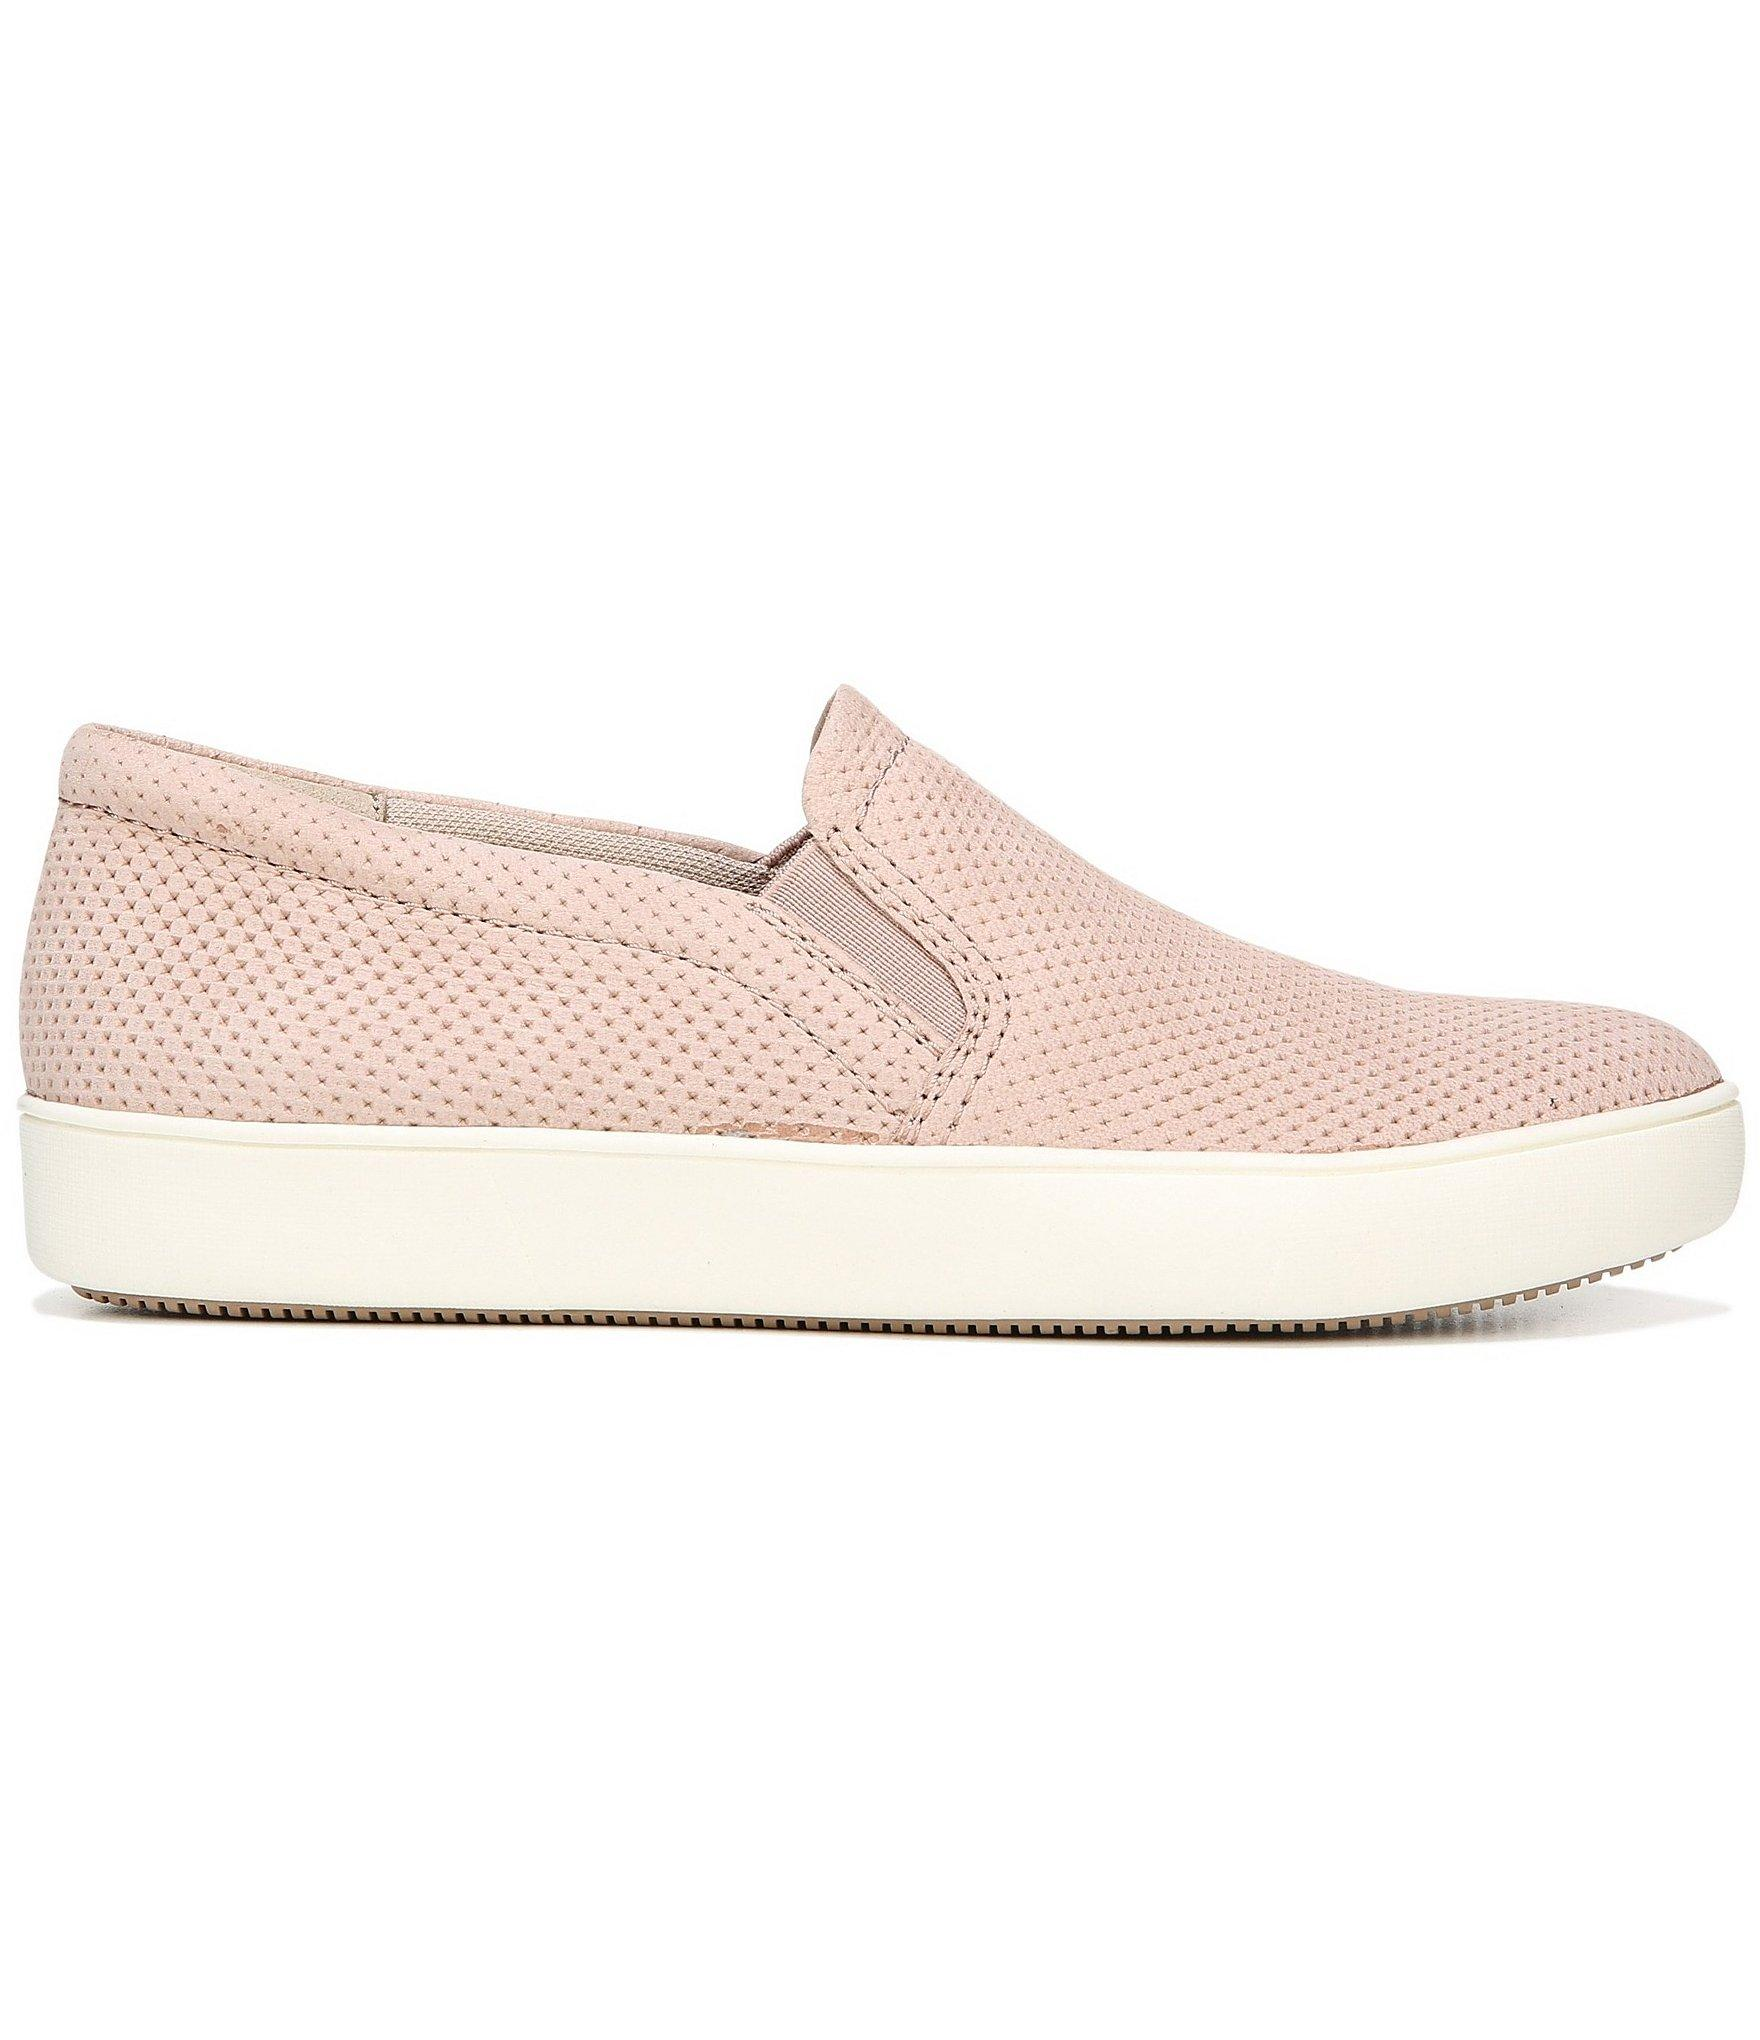 4699df44e0f Lyst - Naturalizer Marianne Perforated Leather Sneakers in Purple